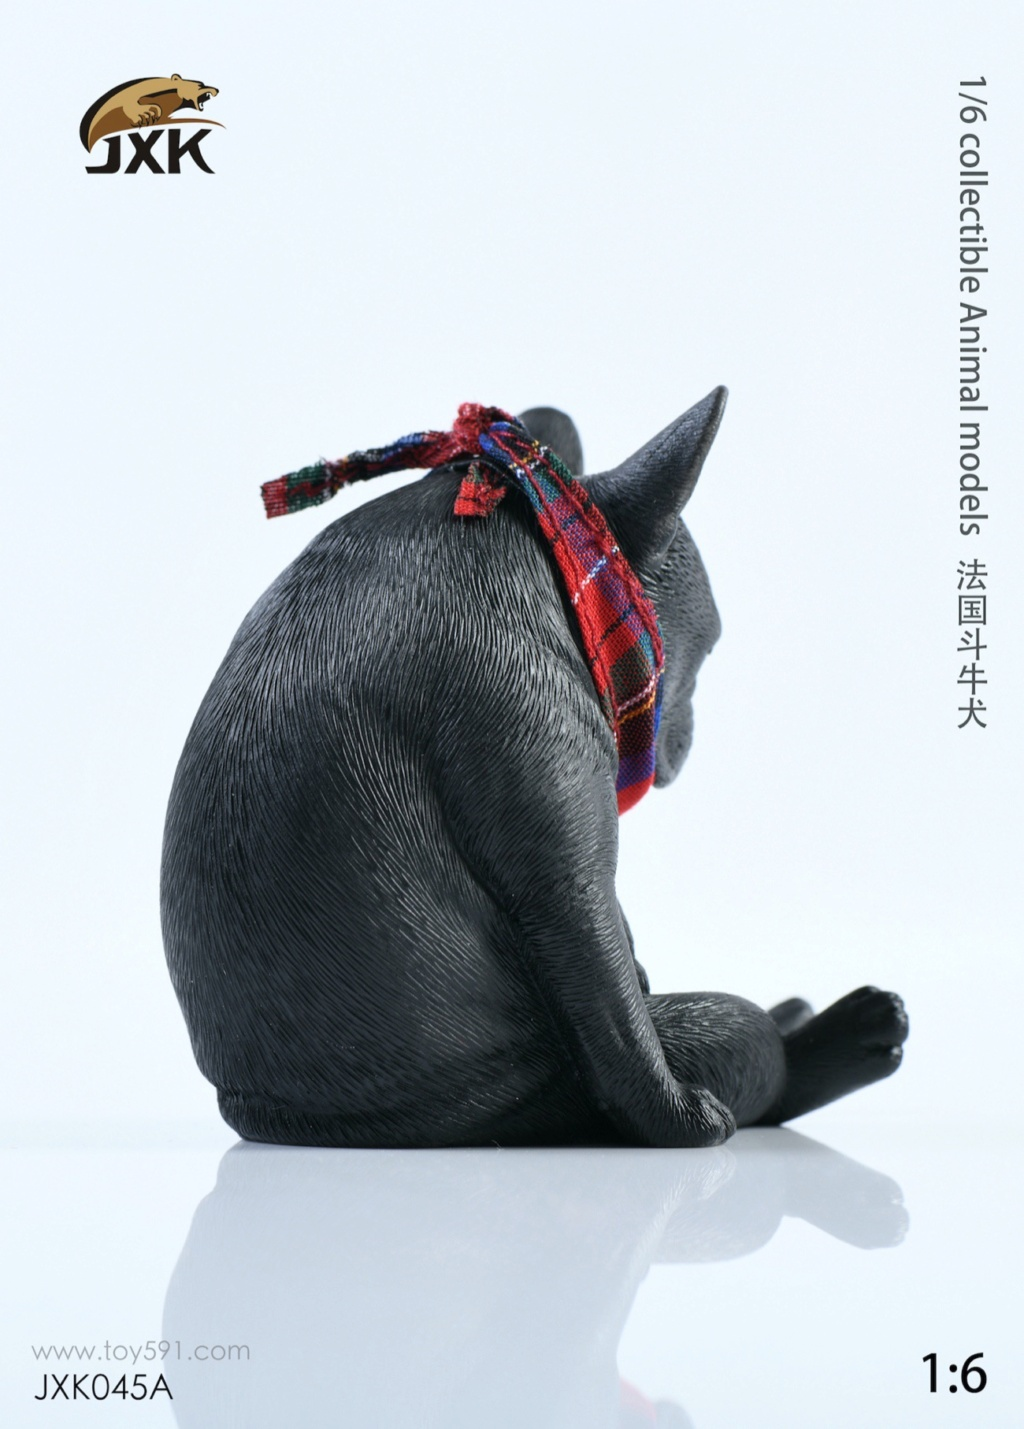 Dog - NEW PRODUCT: JXK 1/6 Decadent Dog JXK045 French Bulldog + Scarf C17a2510